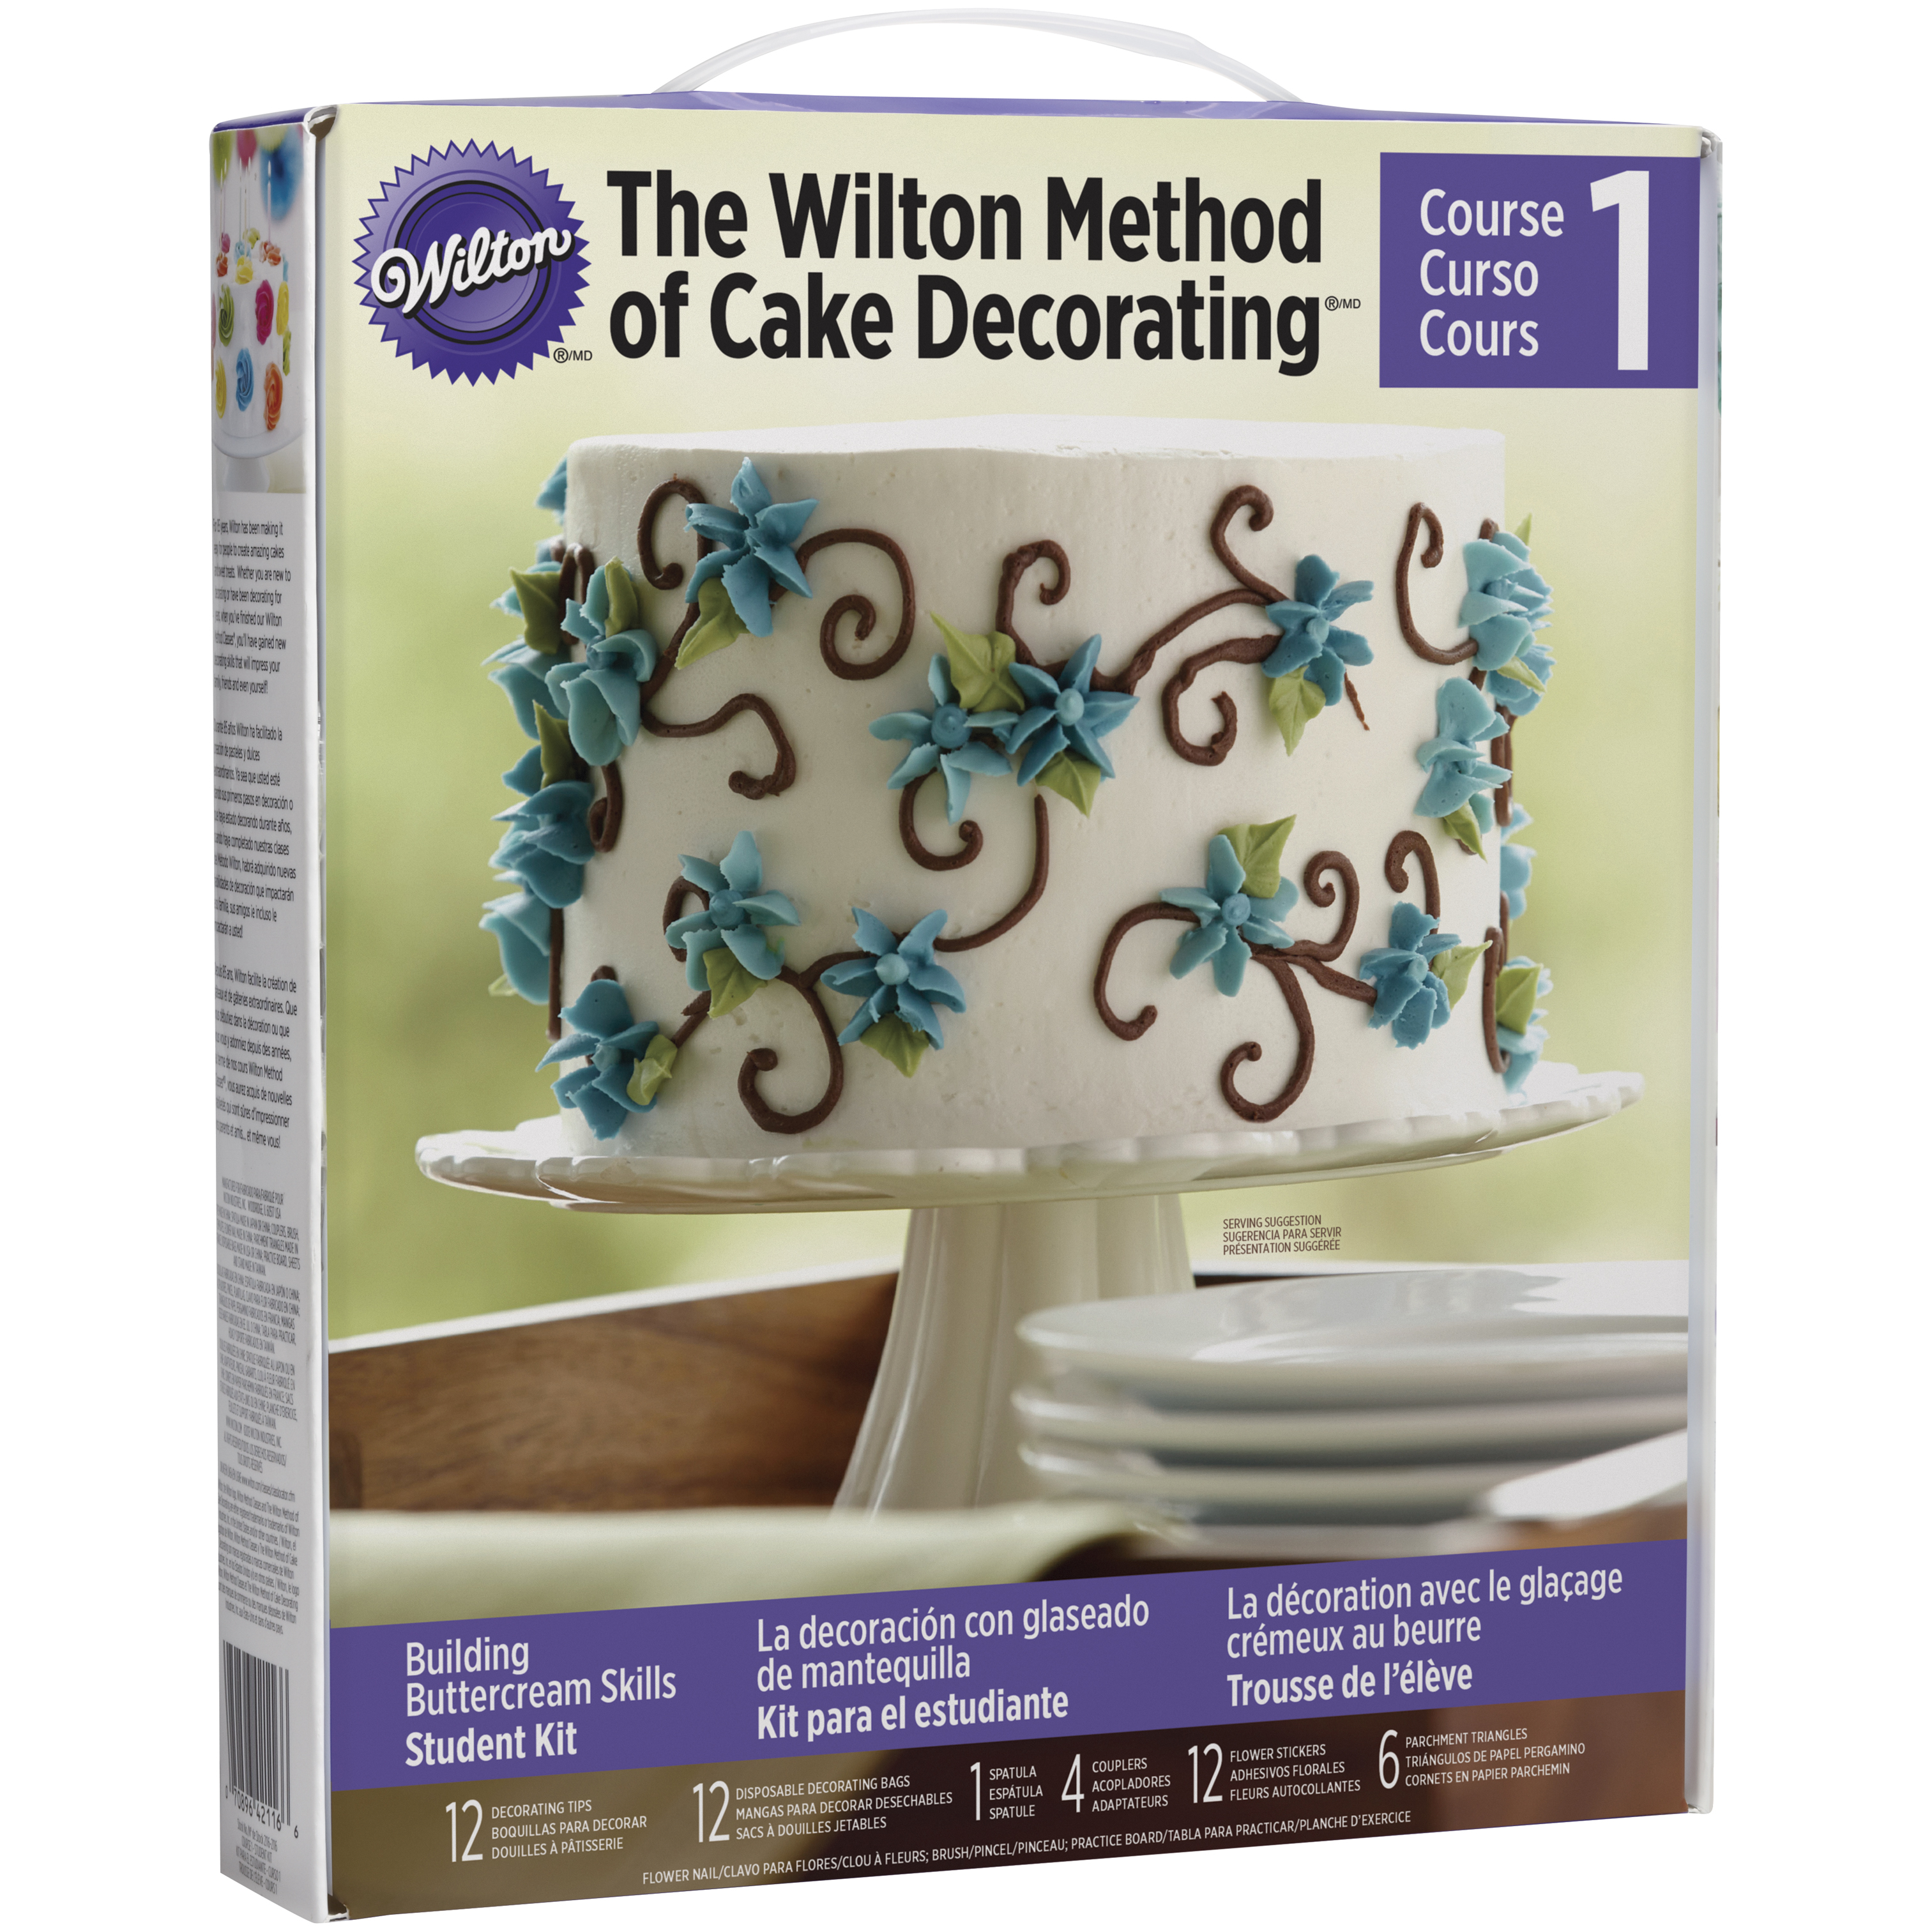 The Wilton Method of Cake Decorating, Course 1-Building Buttercream Skills